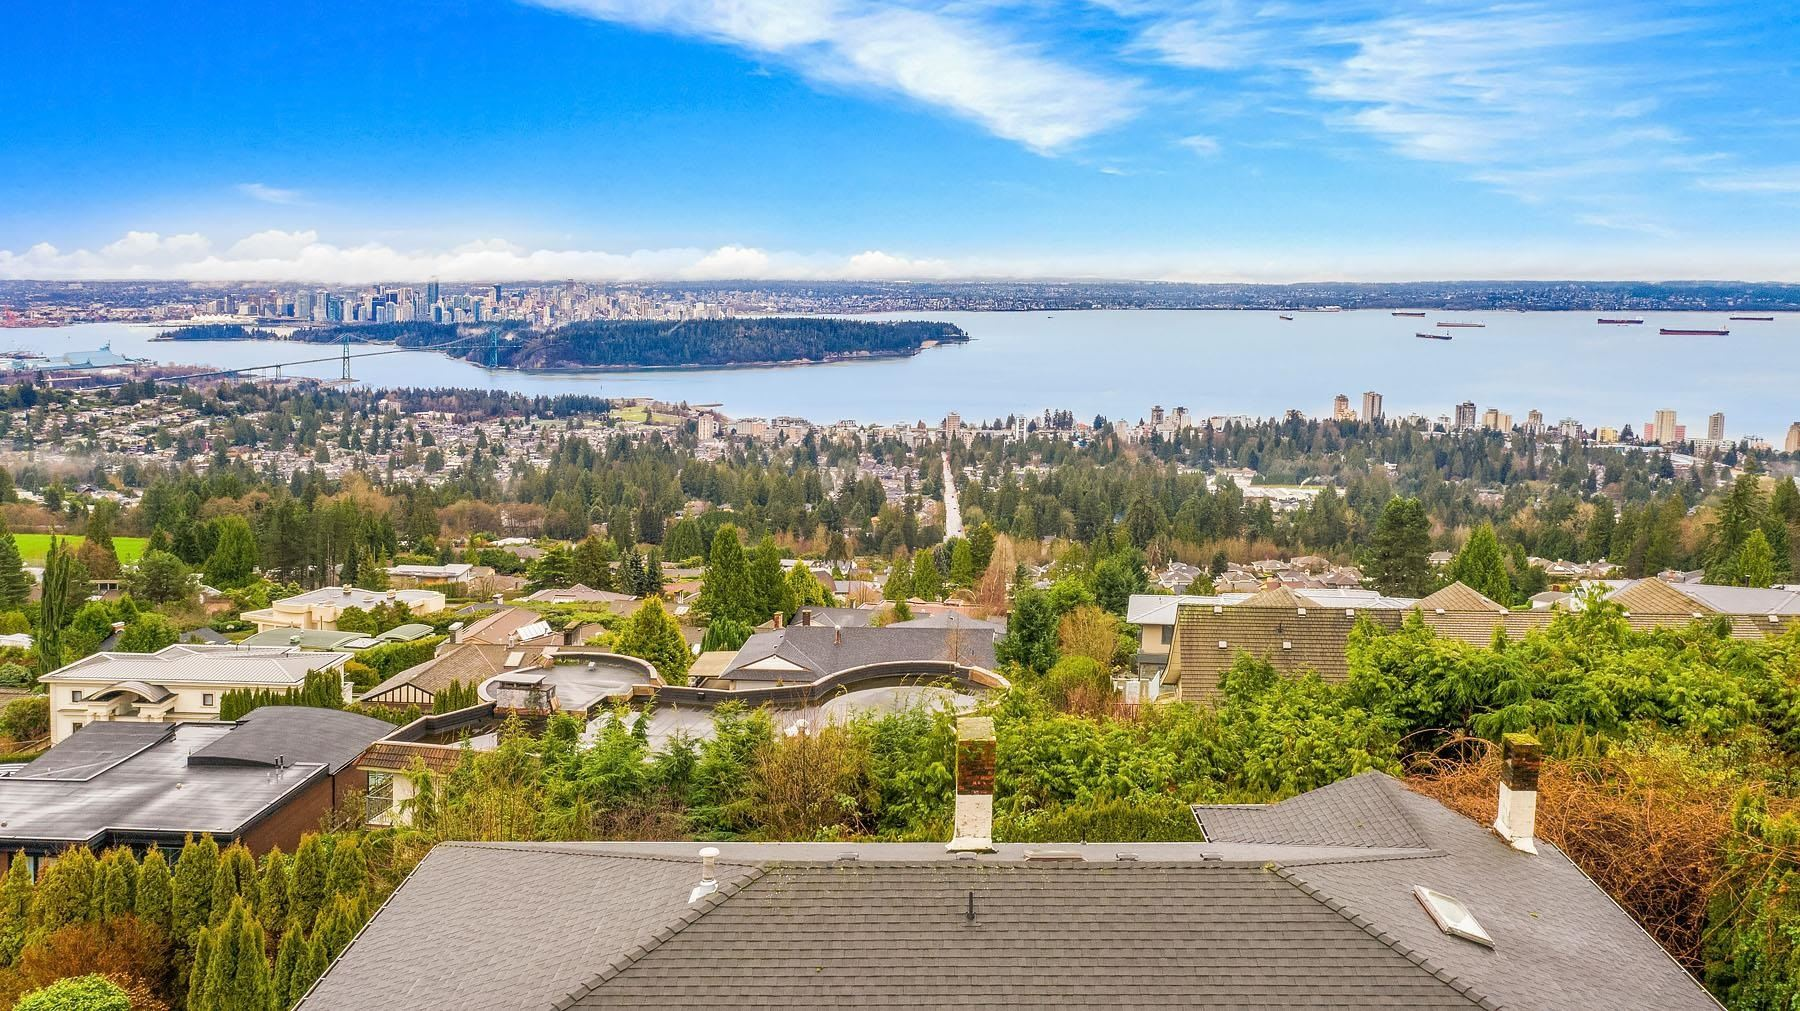 Photo of 1412 CHIPPENDALE ROAD, West Vancouver, BC V7S 2N6 (MLS # R2627437)